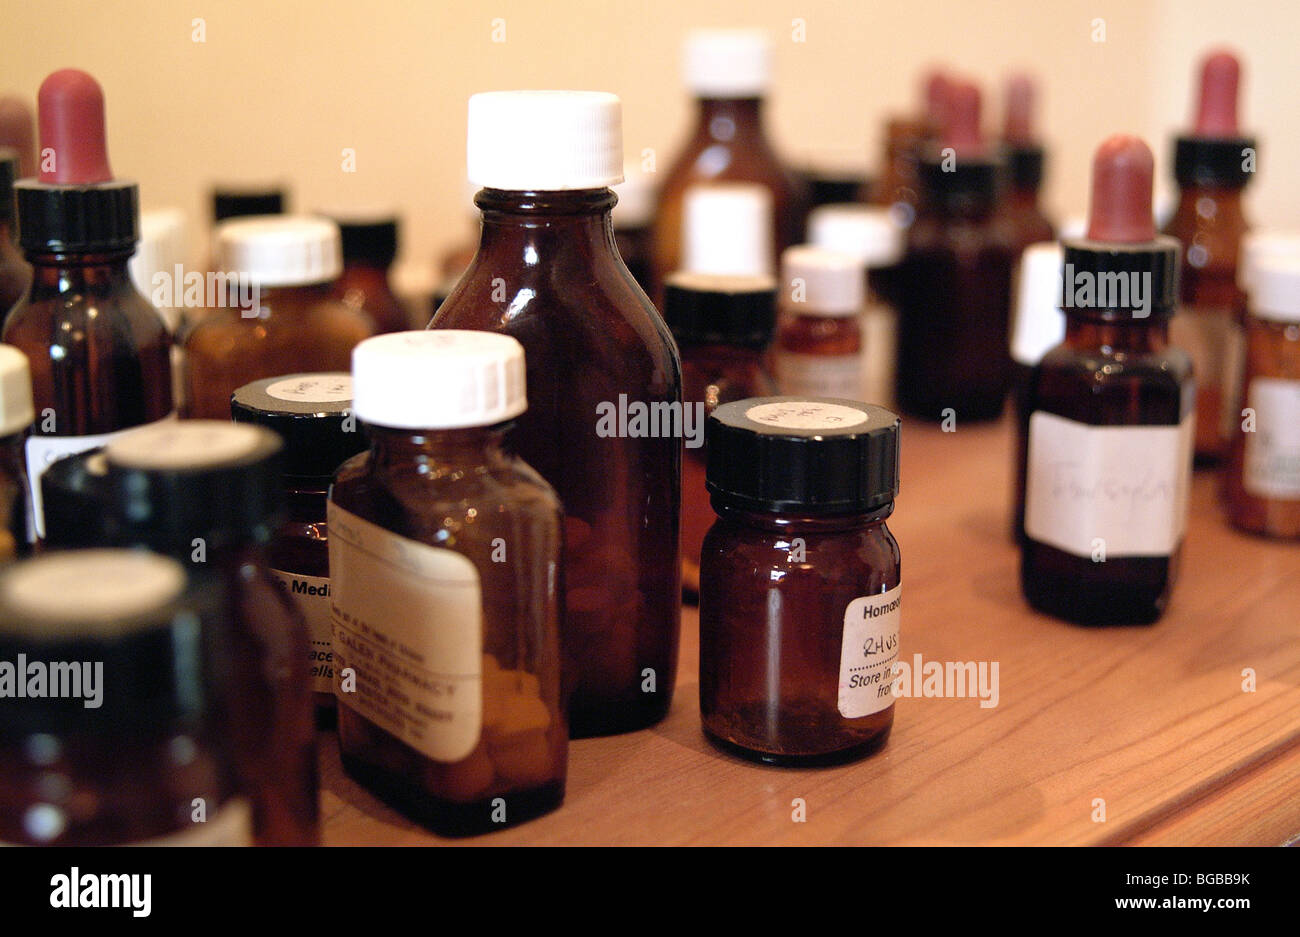 Royalty free photograph of bottles pills medicine cabinet health issues - Stock Image